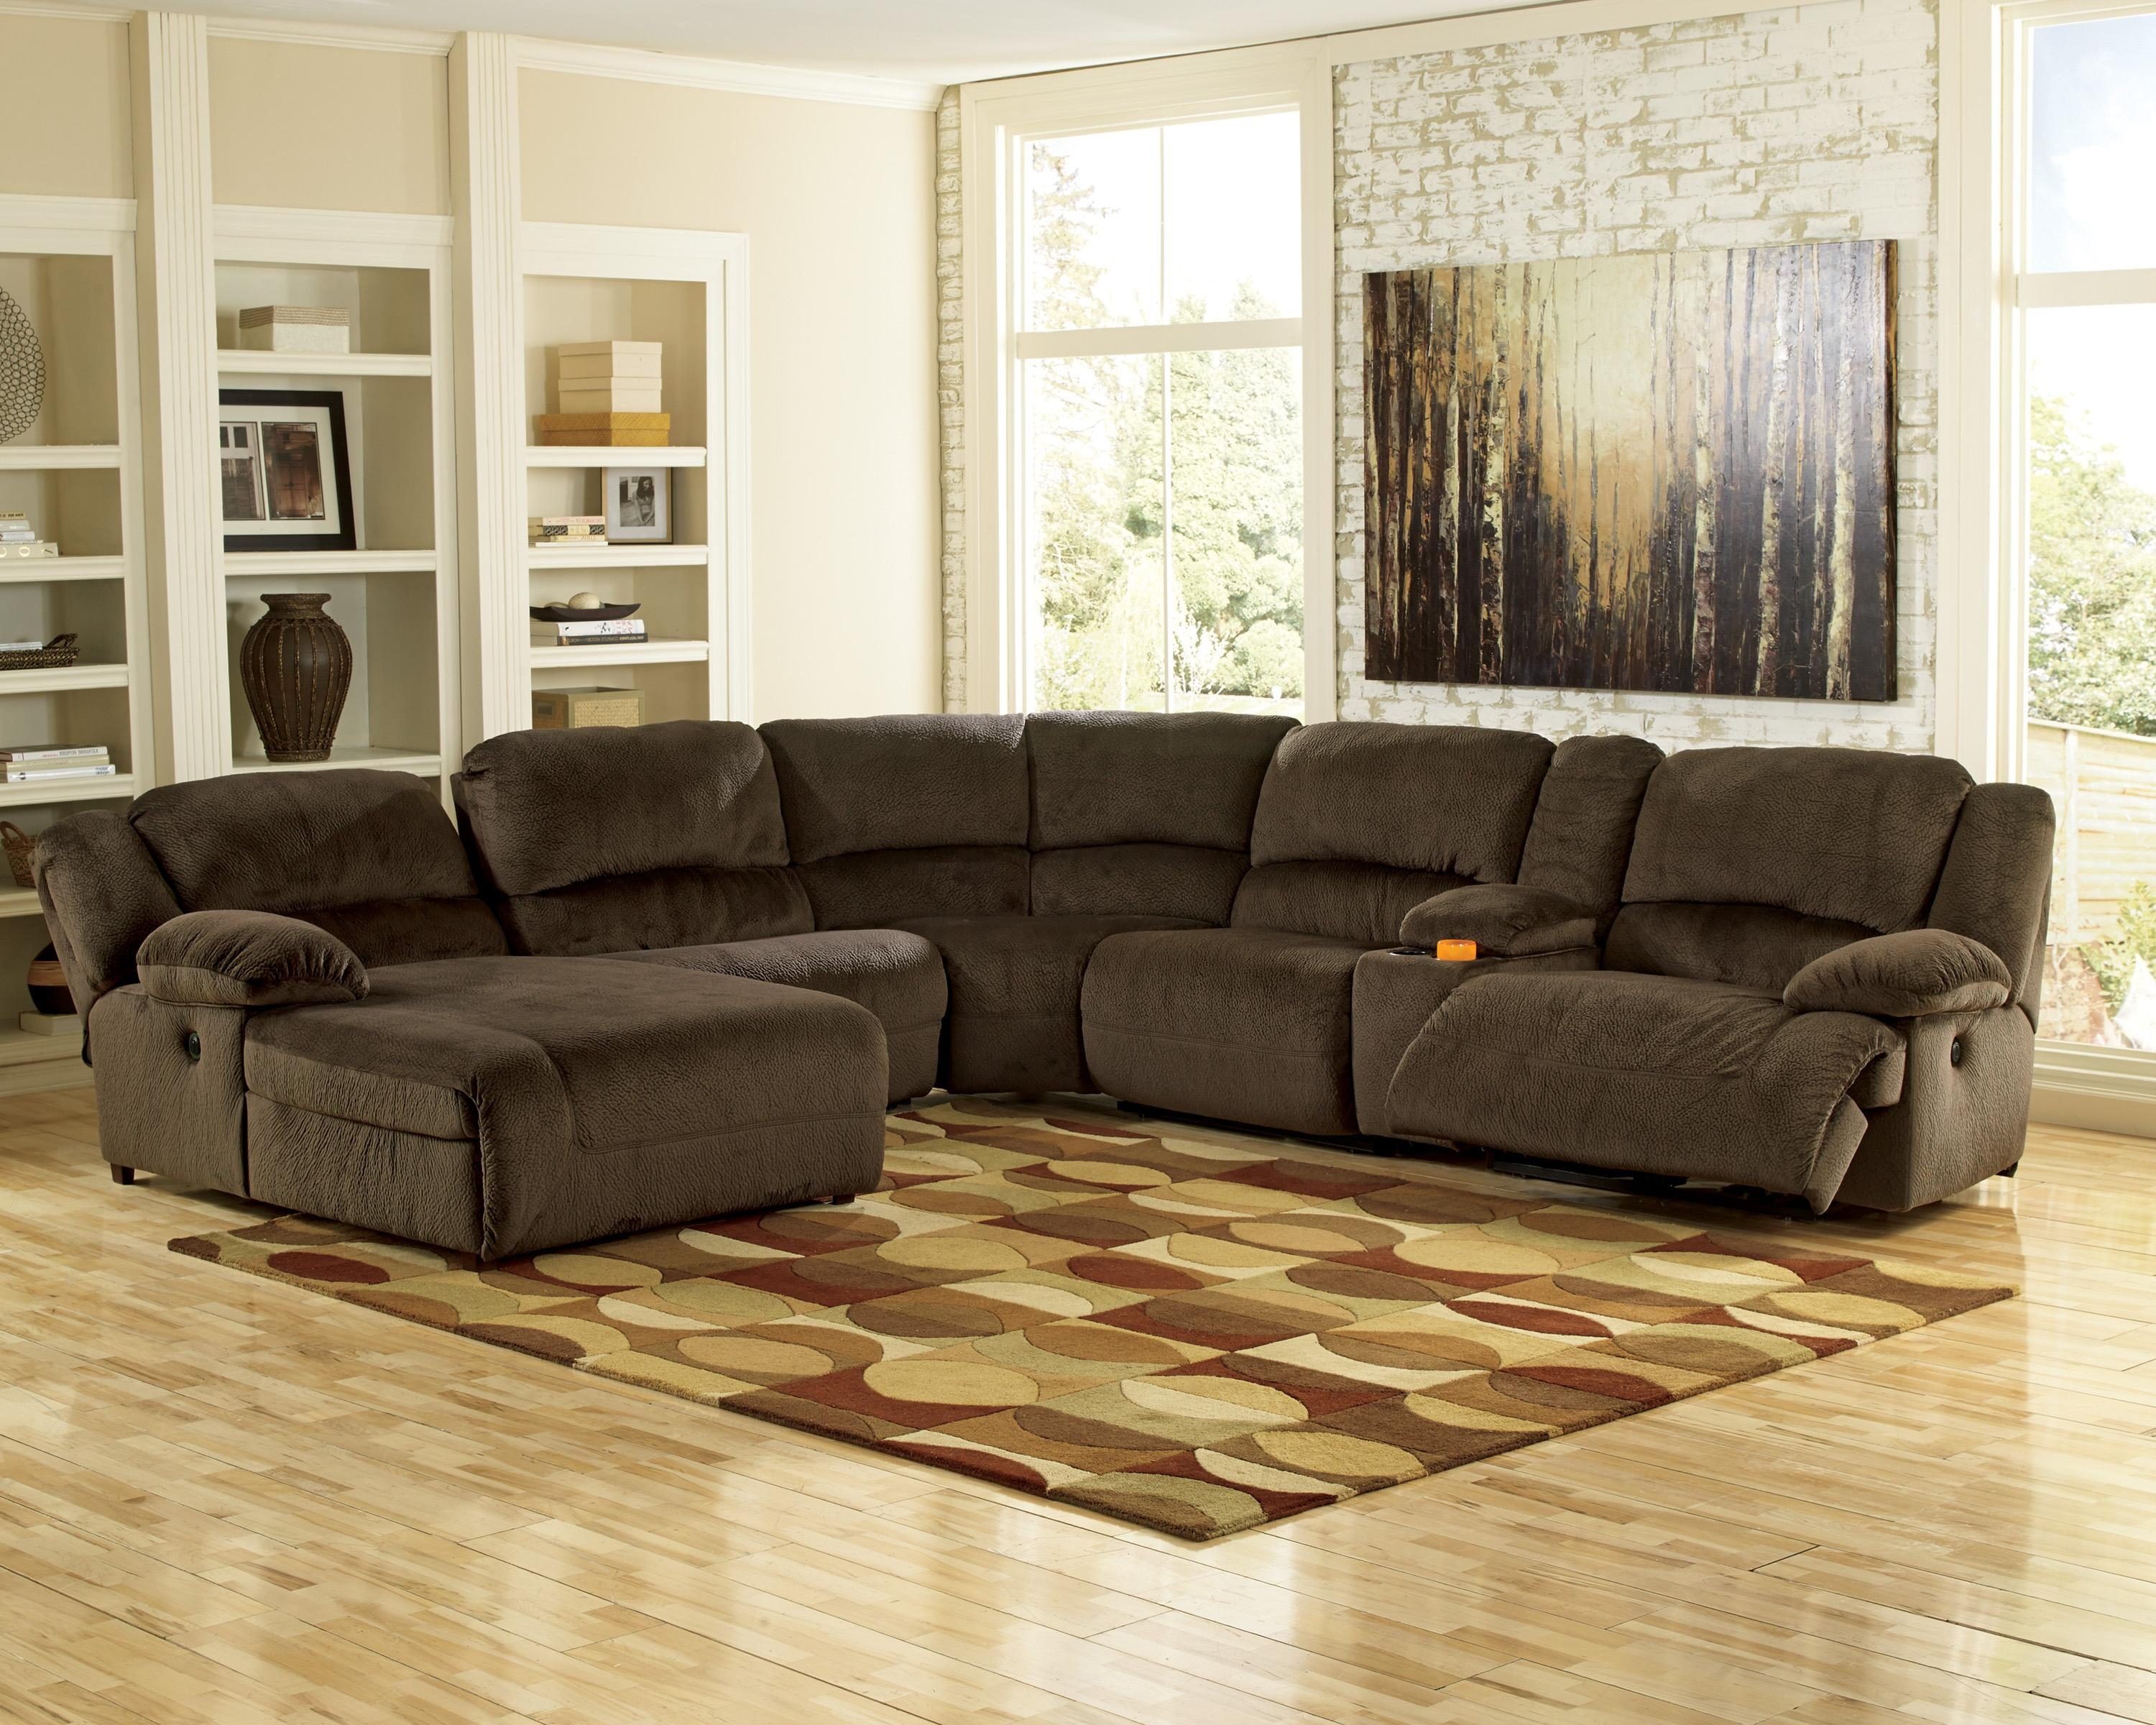 Ashley Furniture Sectional Couches (View 8 of 20)